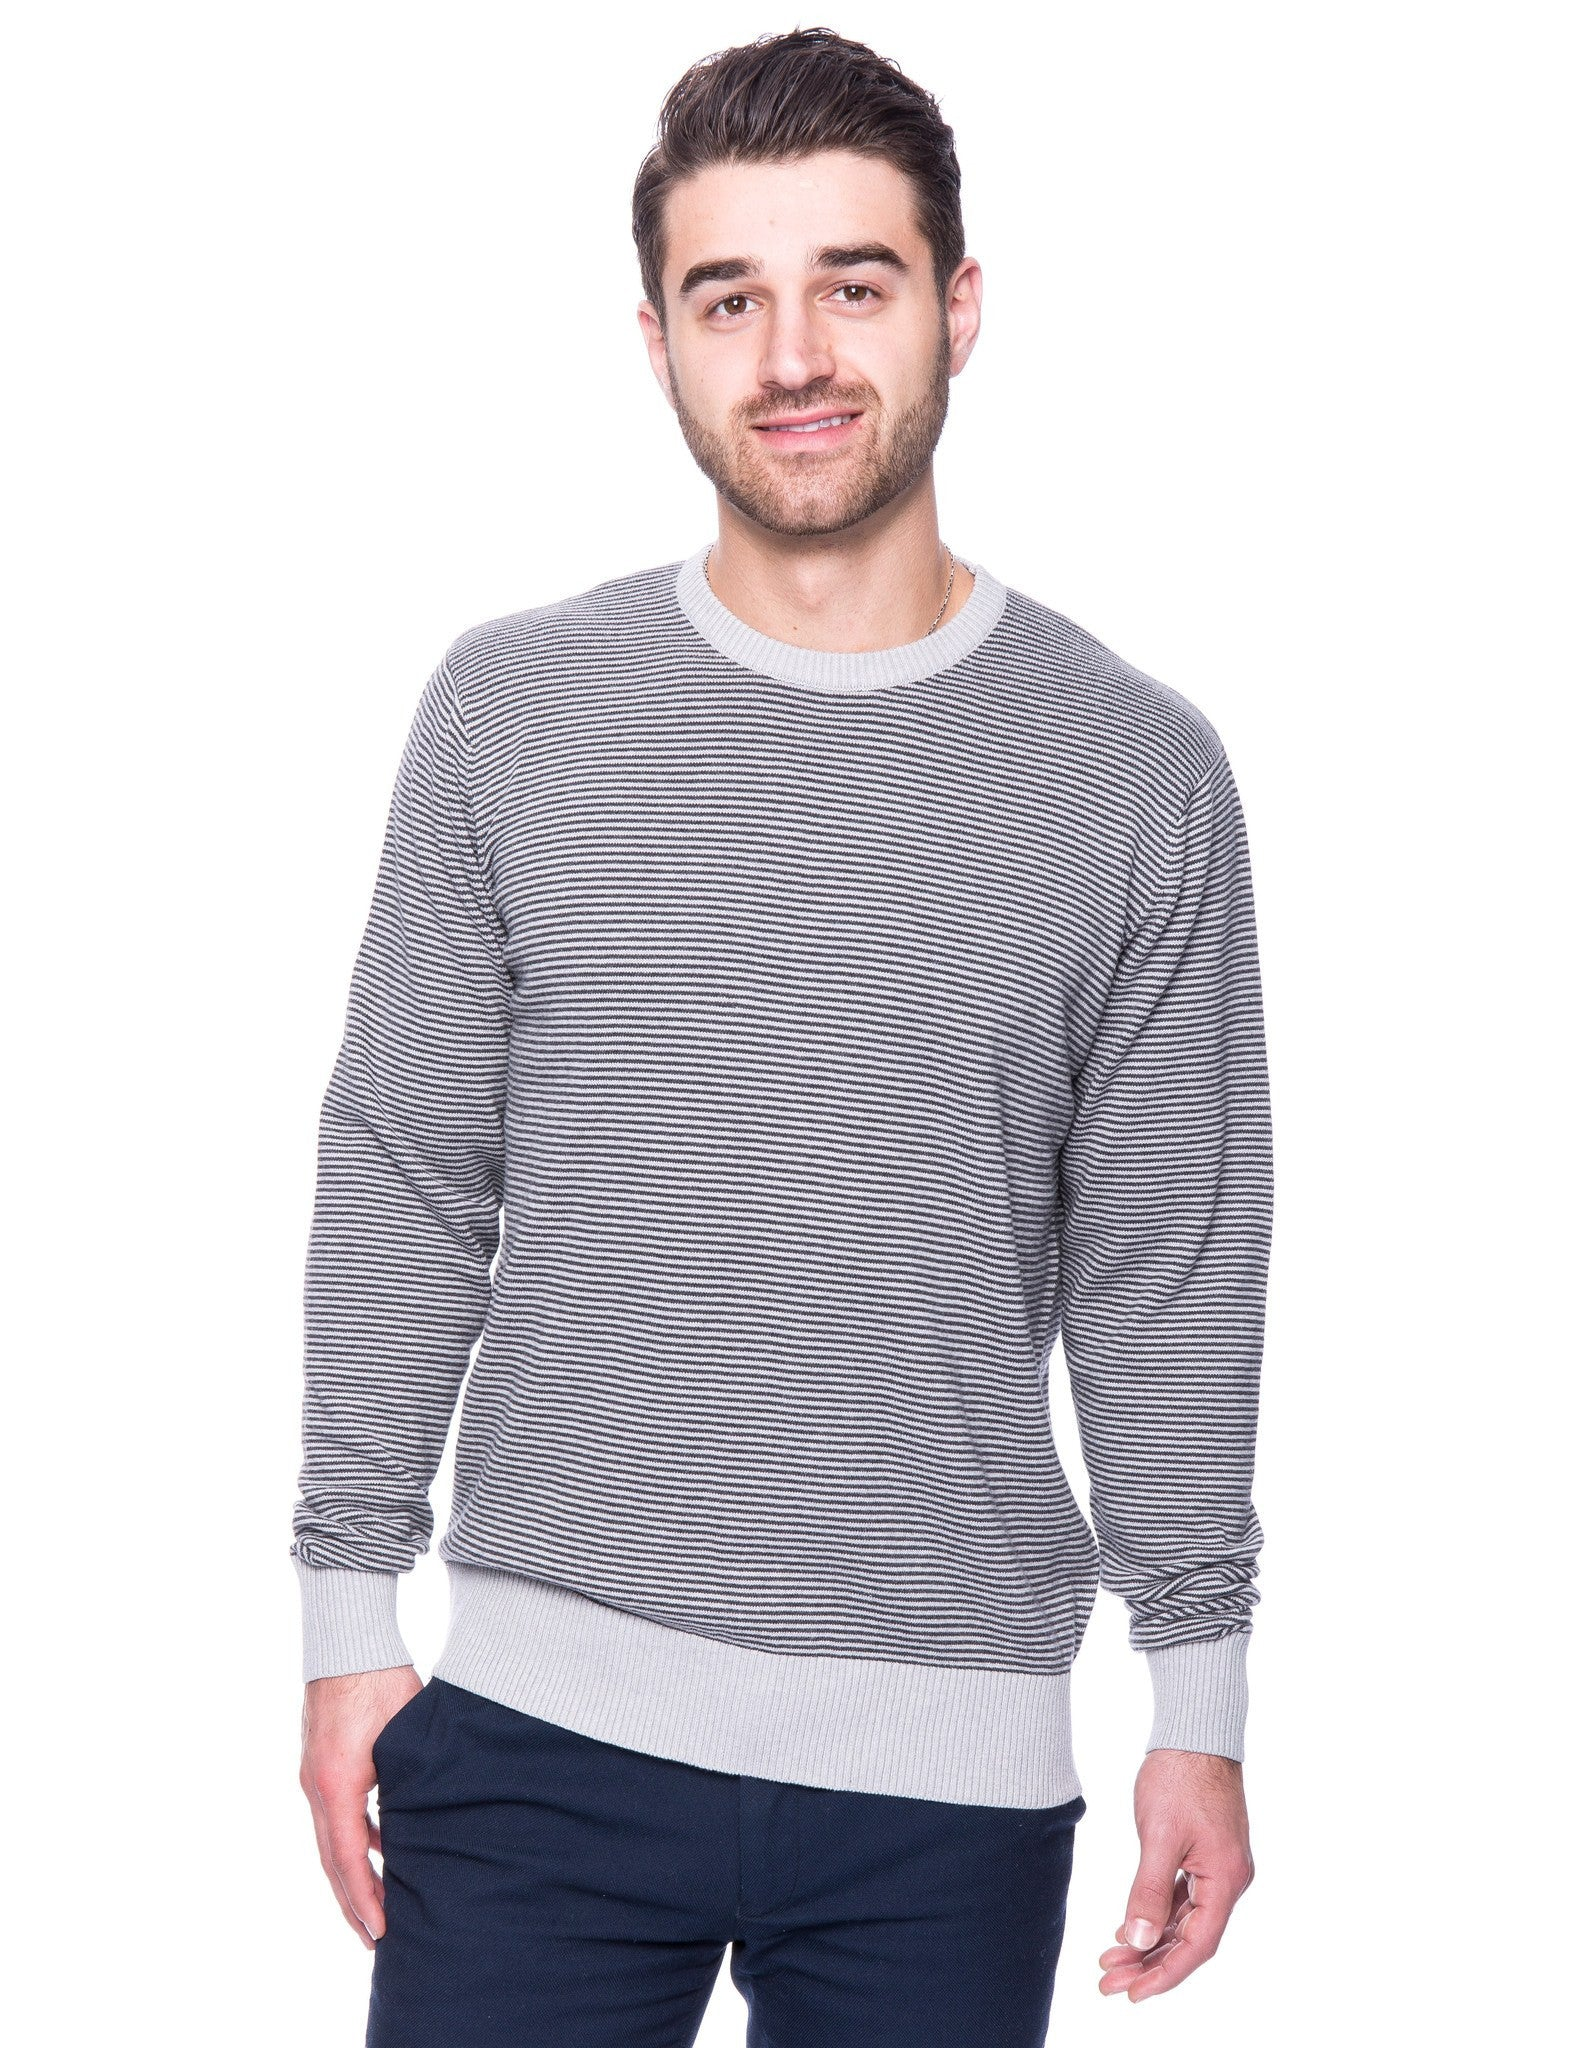 Men's Premium 100% Cotton Crew Neck Sweater